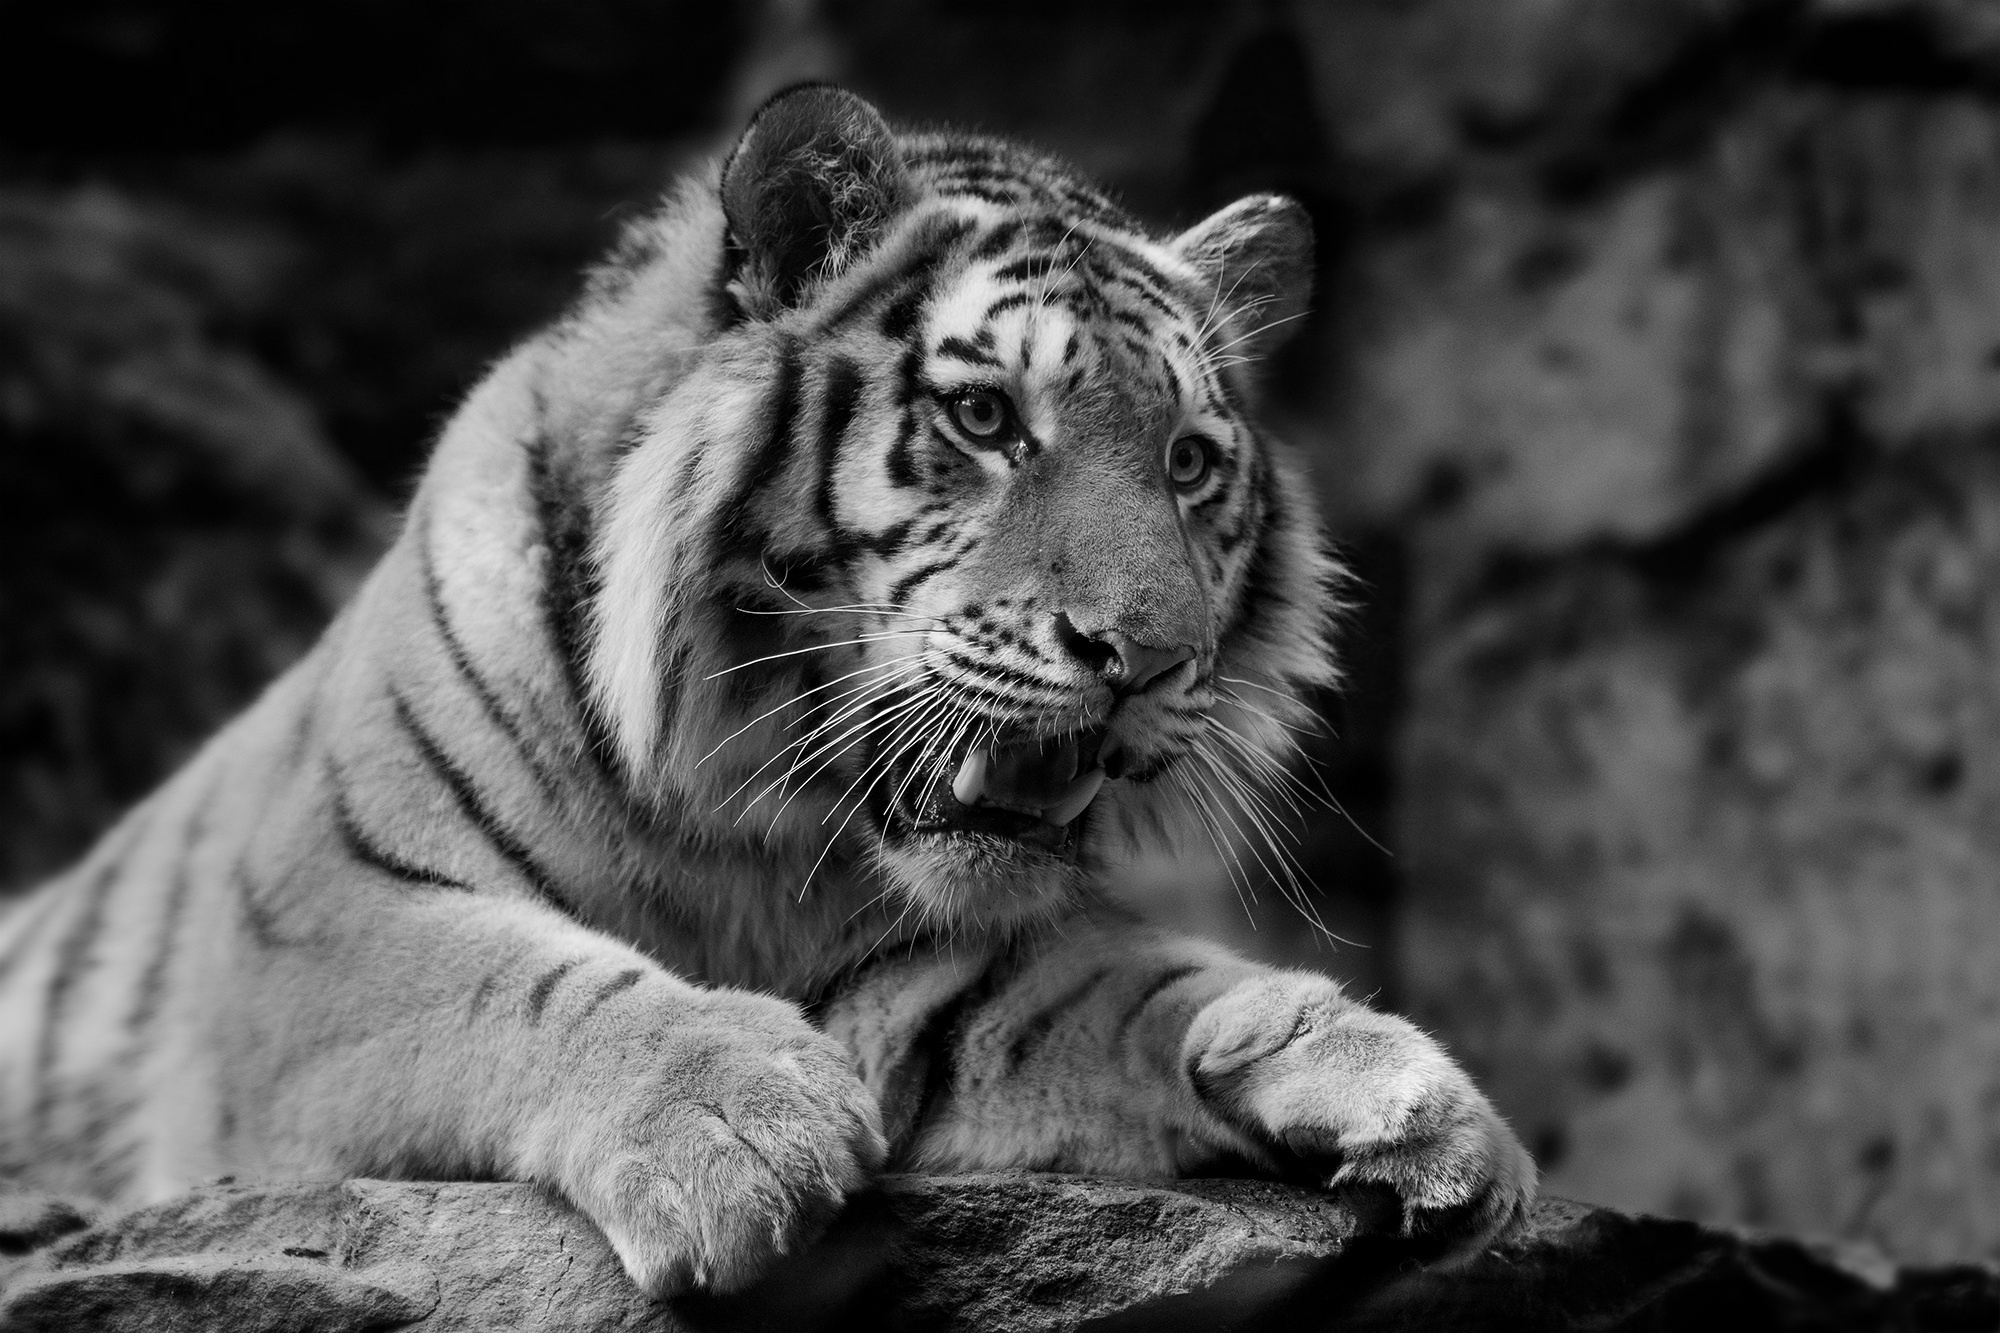 83743 free wallpaper 720x1280 for phone, download images Animals, Muzzle, Predator, Tiger, Wild Cat, Wildcat 720x1280 for mobile